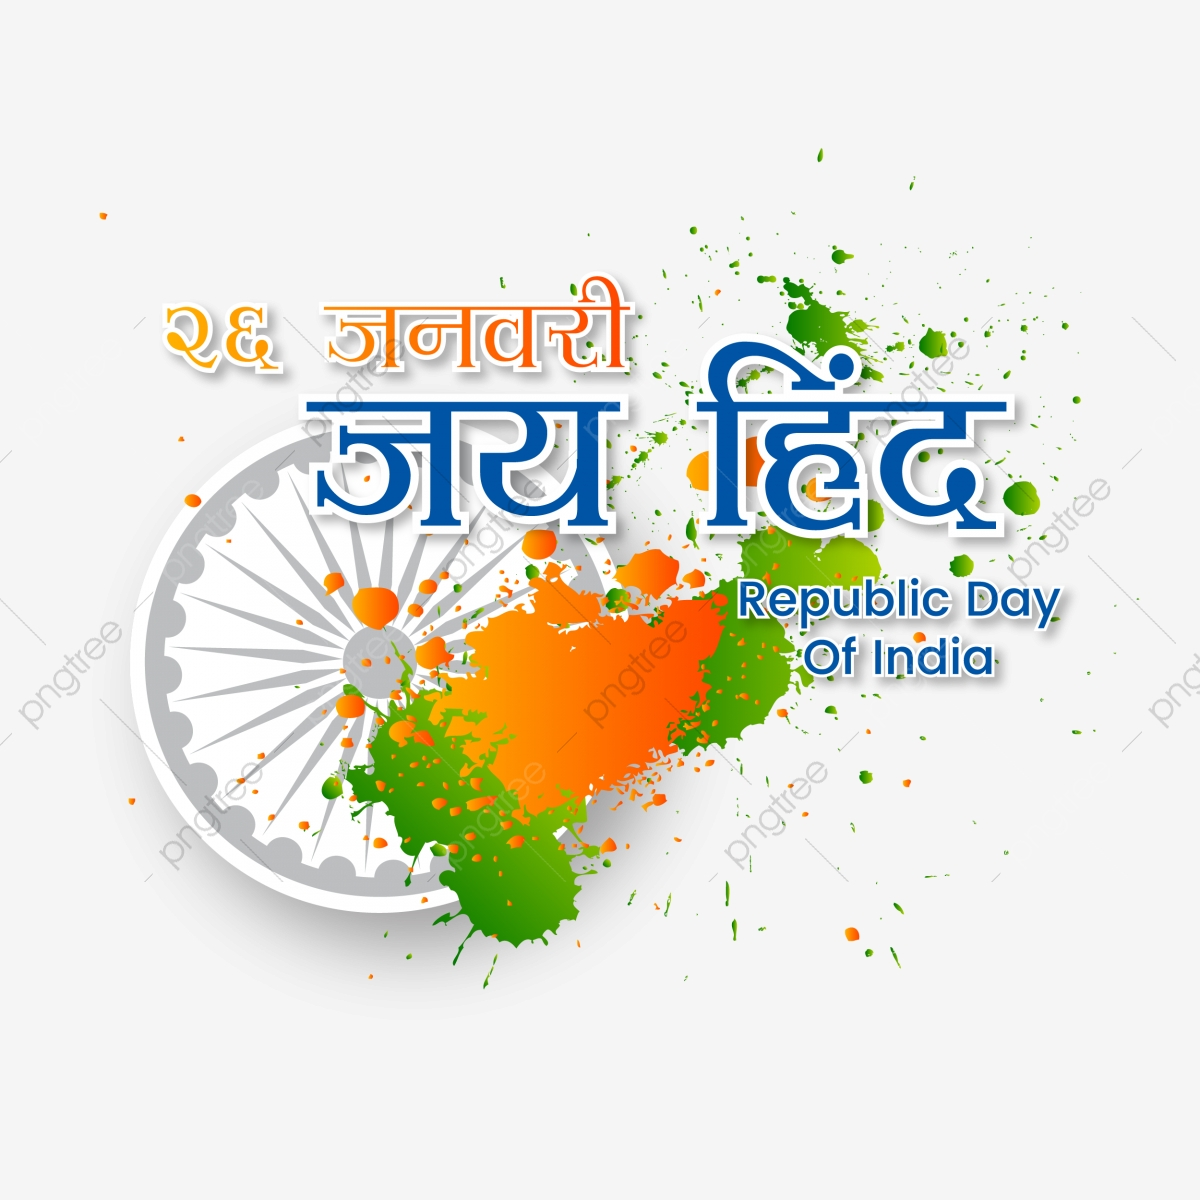 Jai Hind Calligraphy In Hindi 26 January Republic Day Of